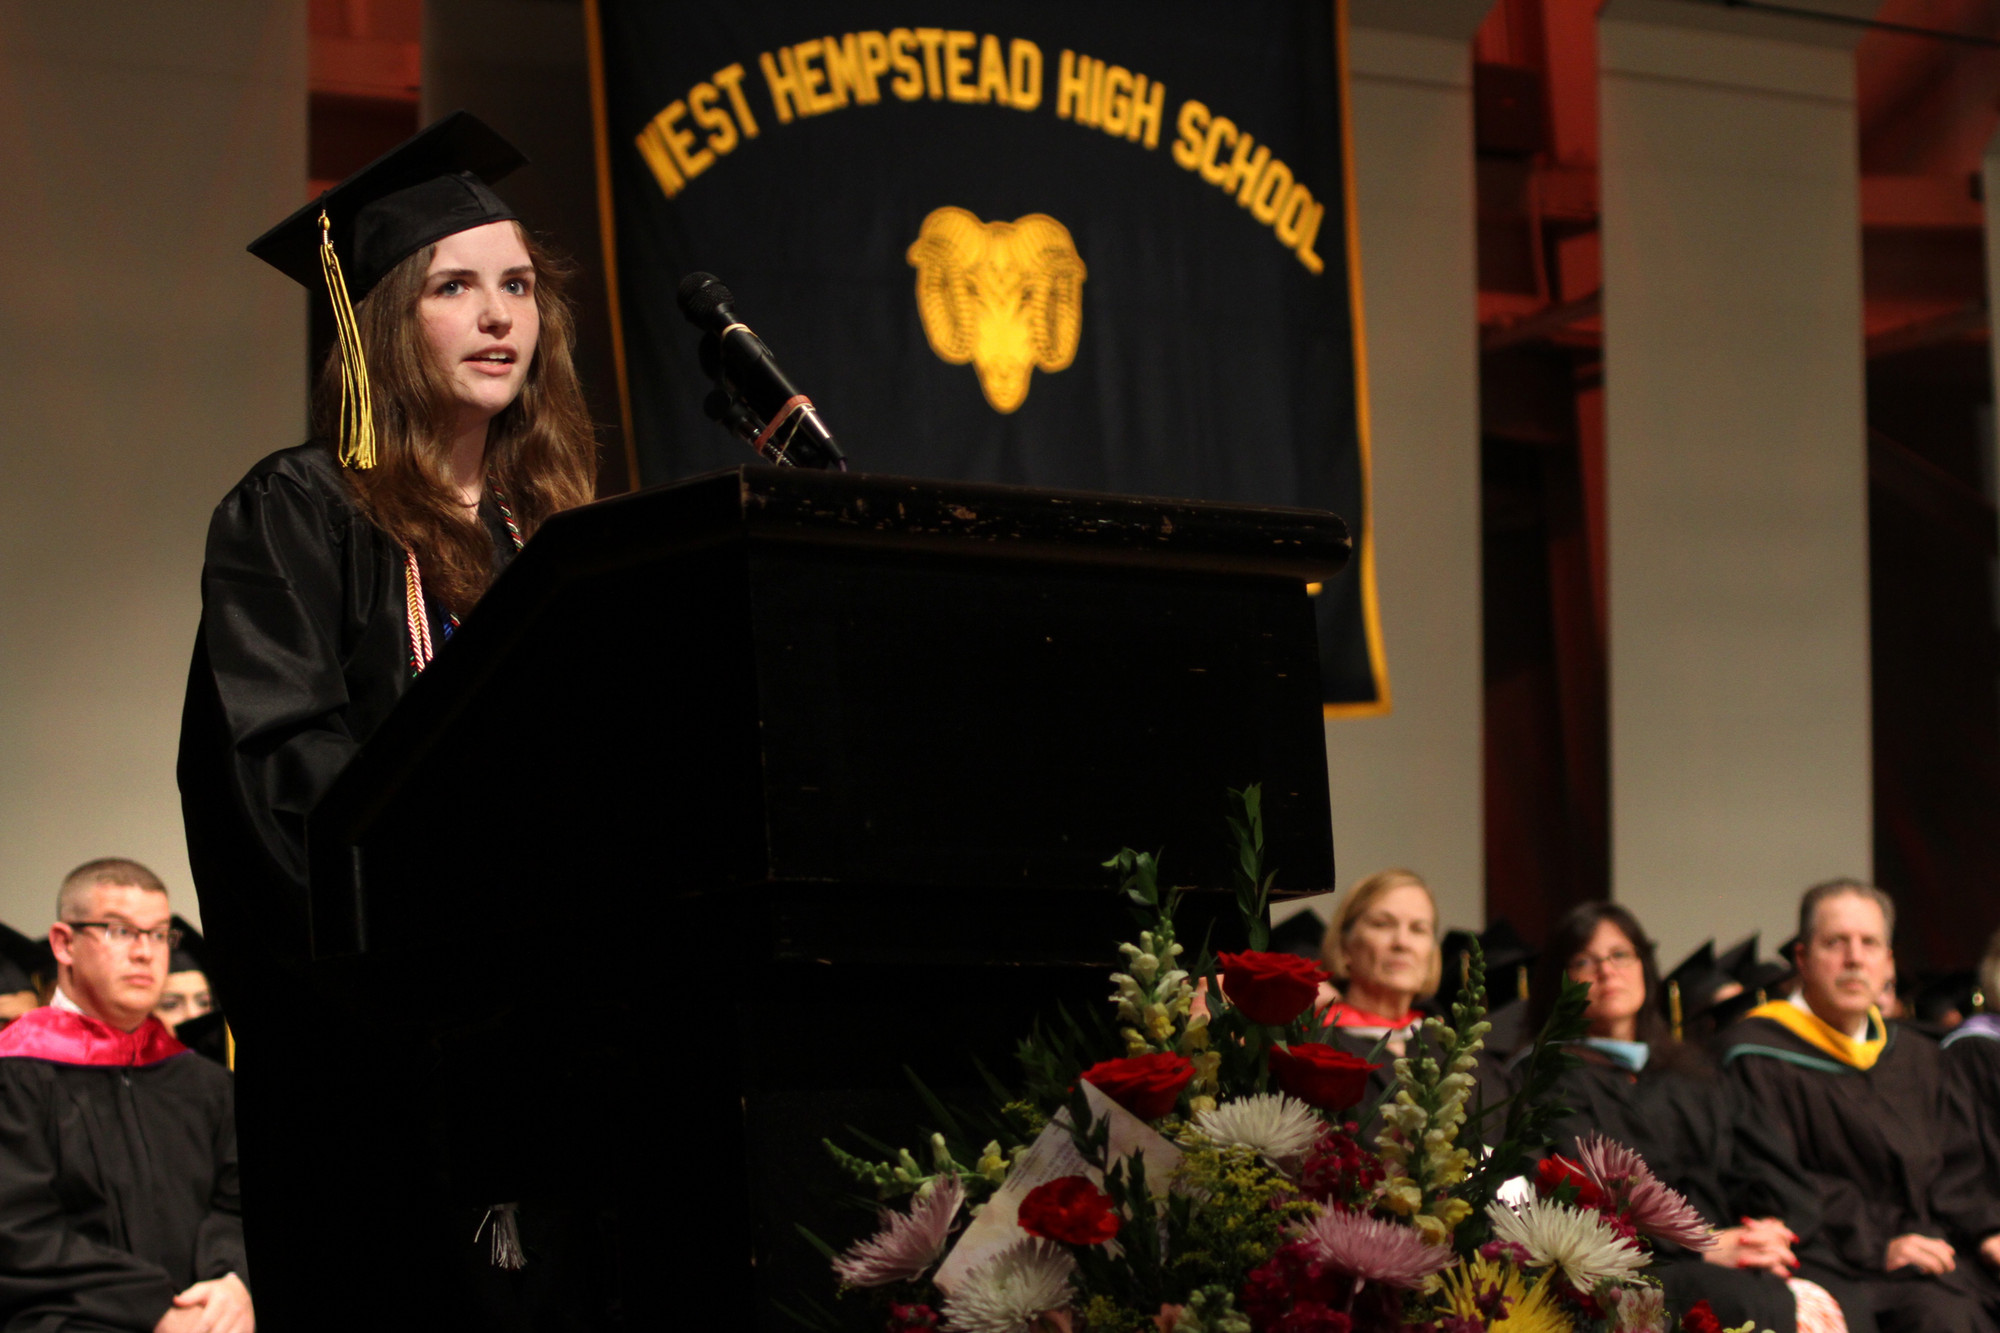 Valedictorian Caroline Moyer Laurin noted how the lessons she learned in high school helped her to grow and excel as a person who can make a difference.